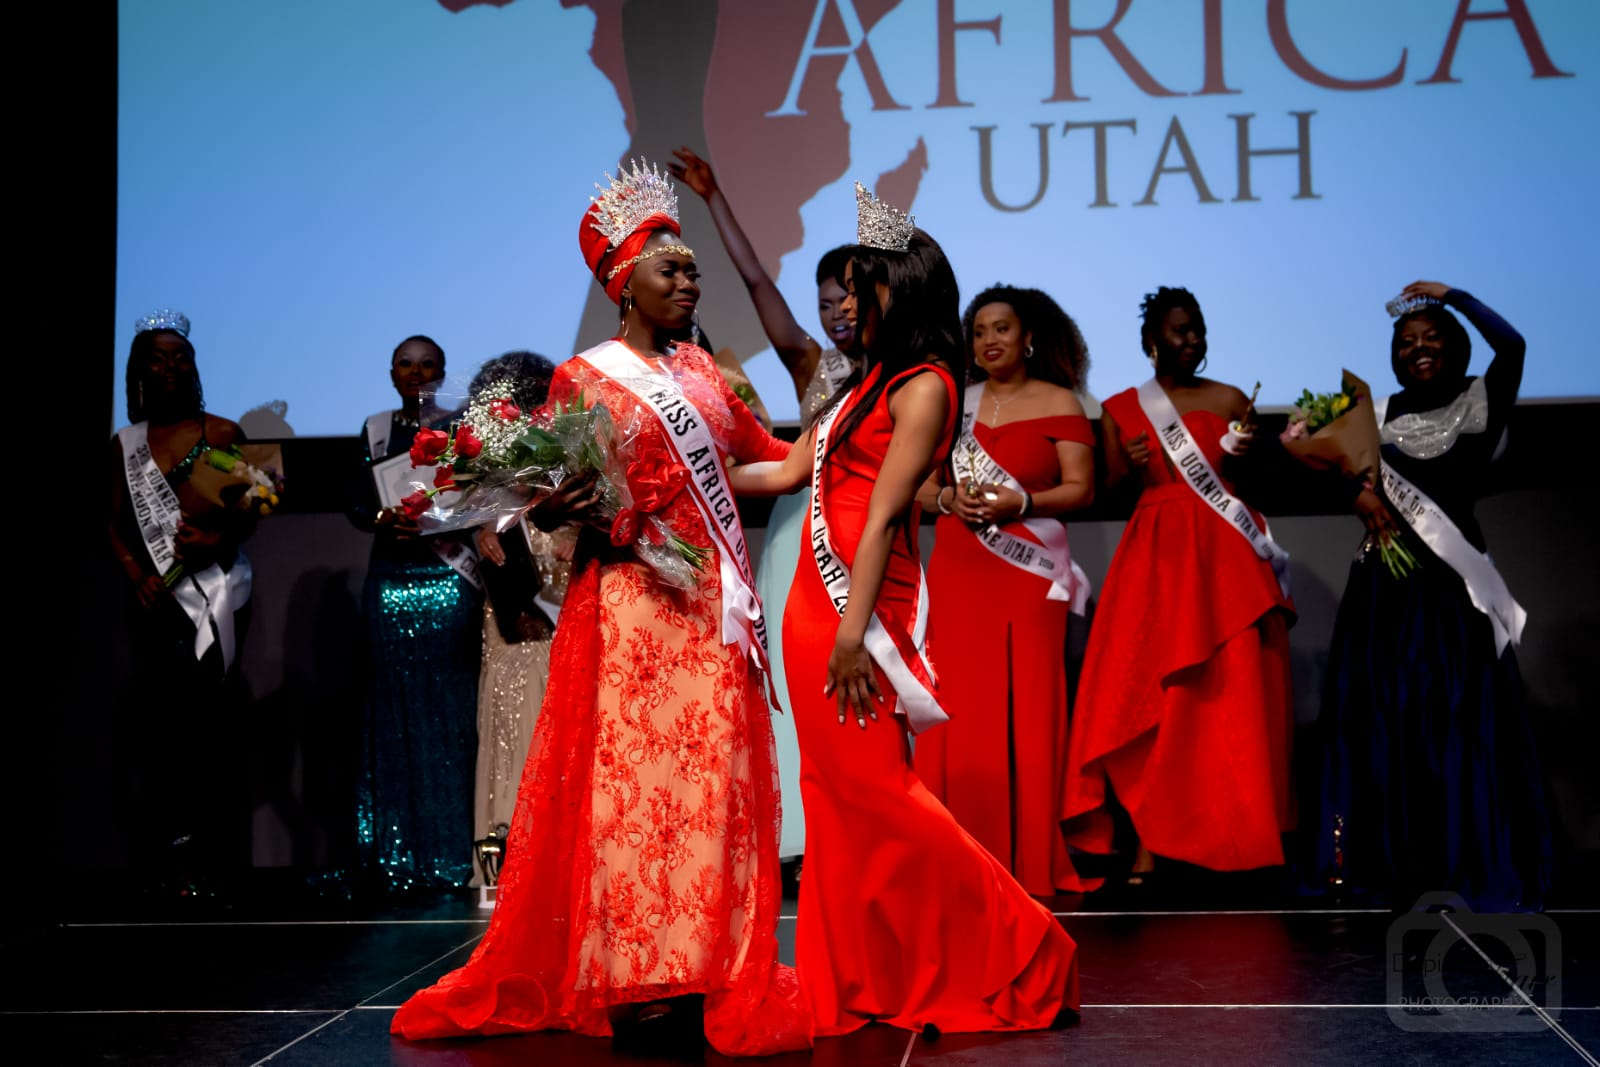 Miss Gambia becomes Miss Africa Utah 2019